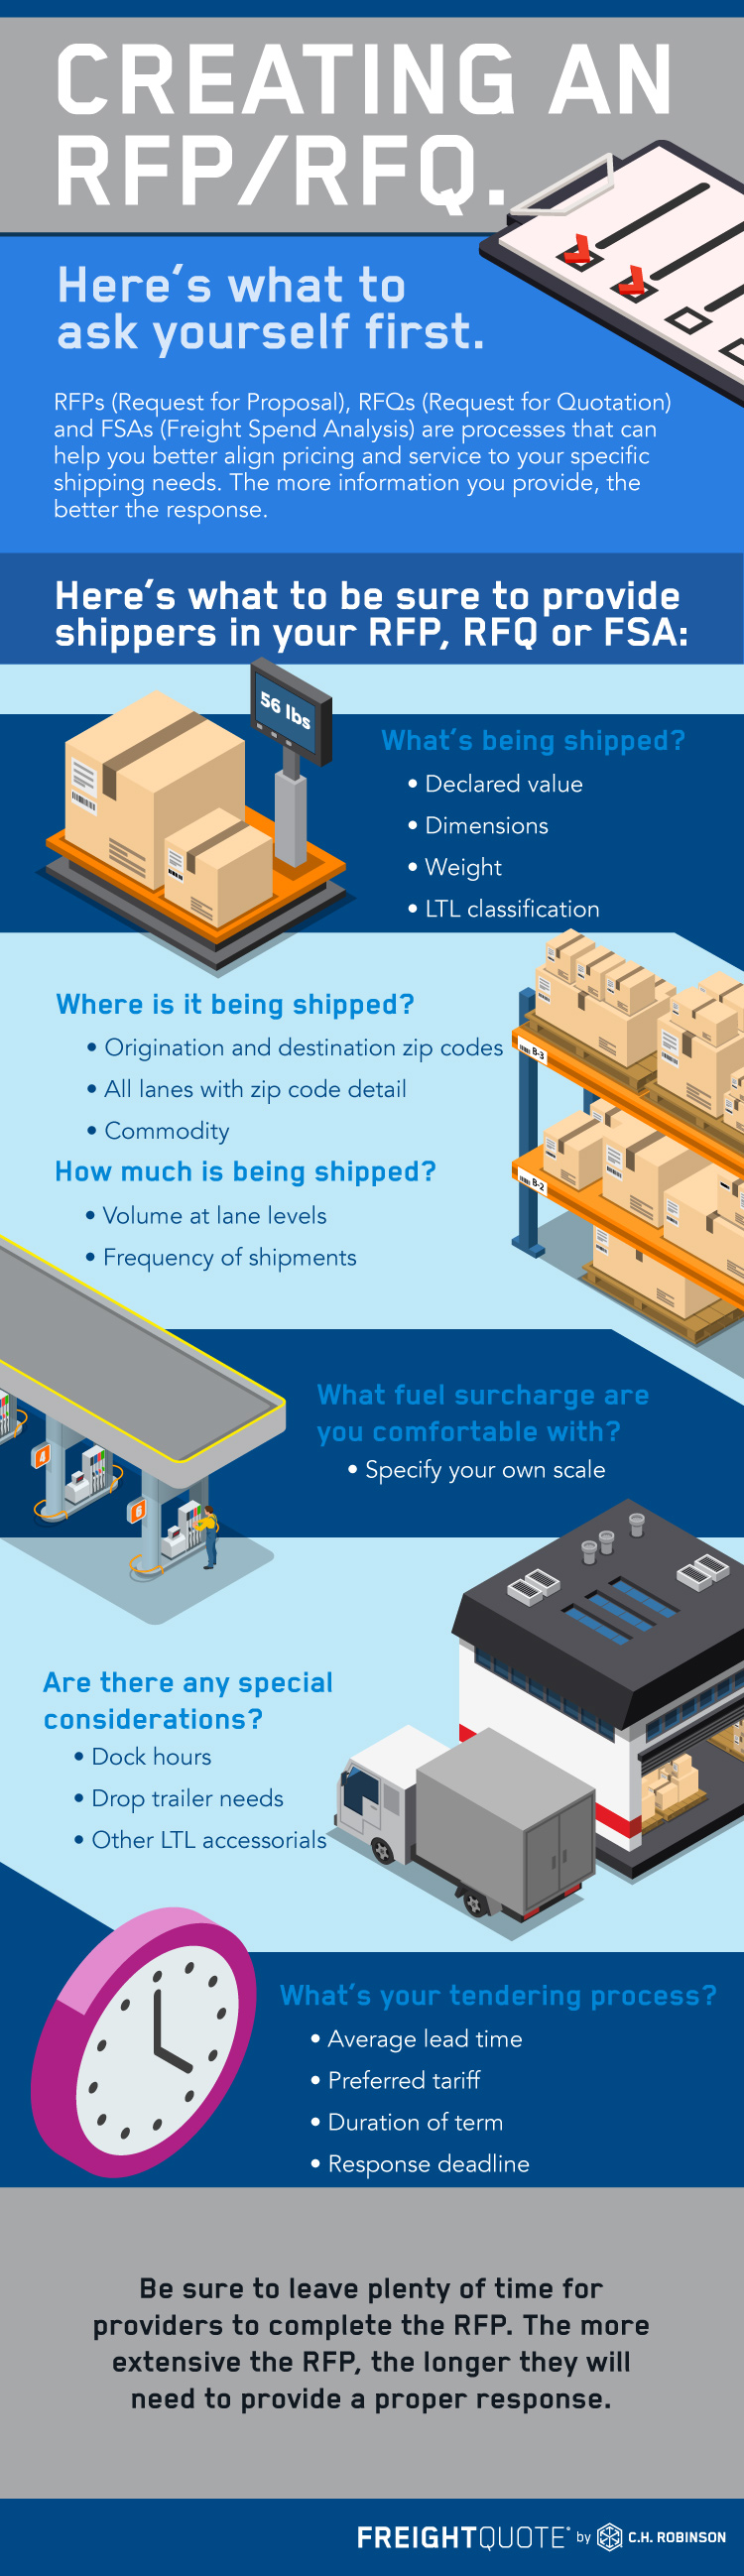 How to create a shipping RFP or RFQ infographic